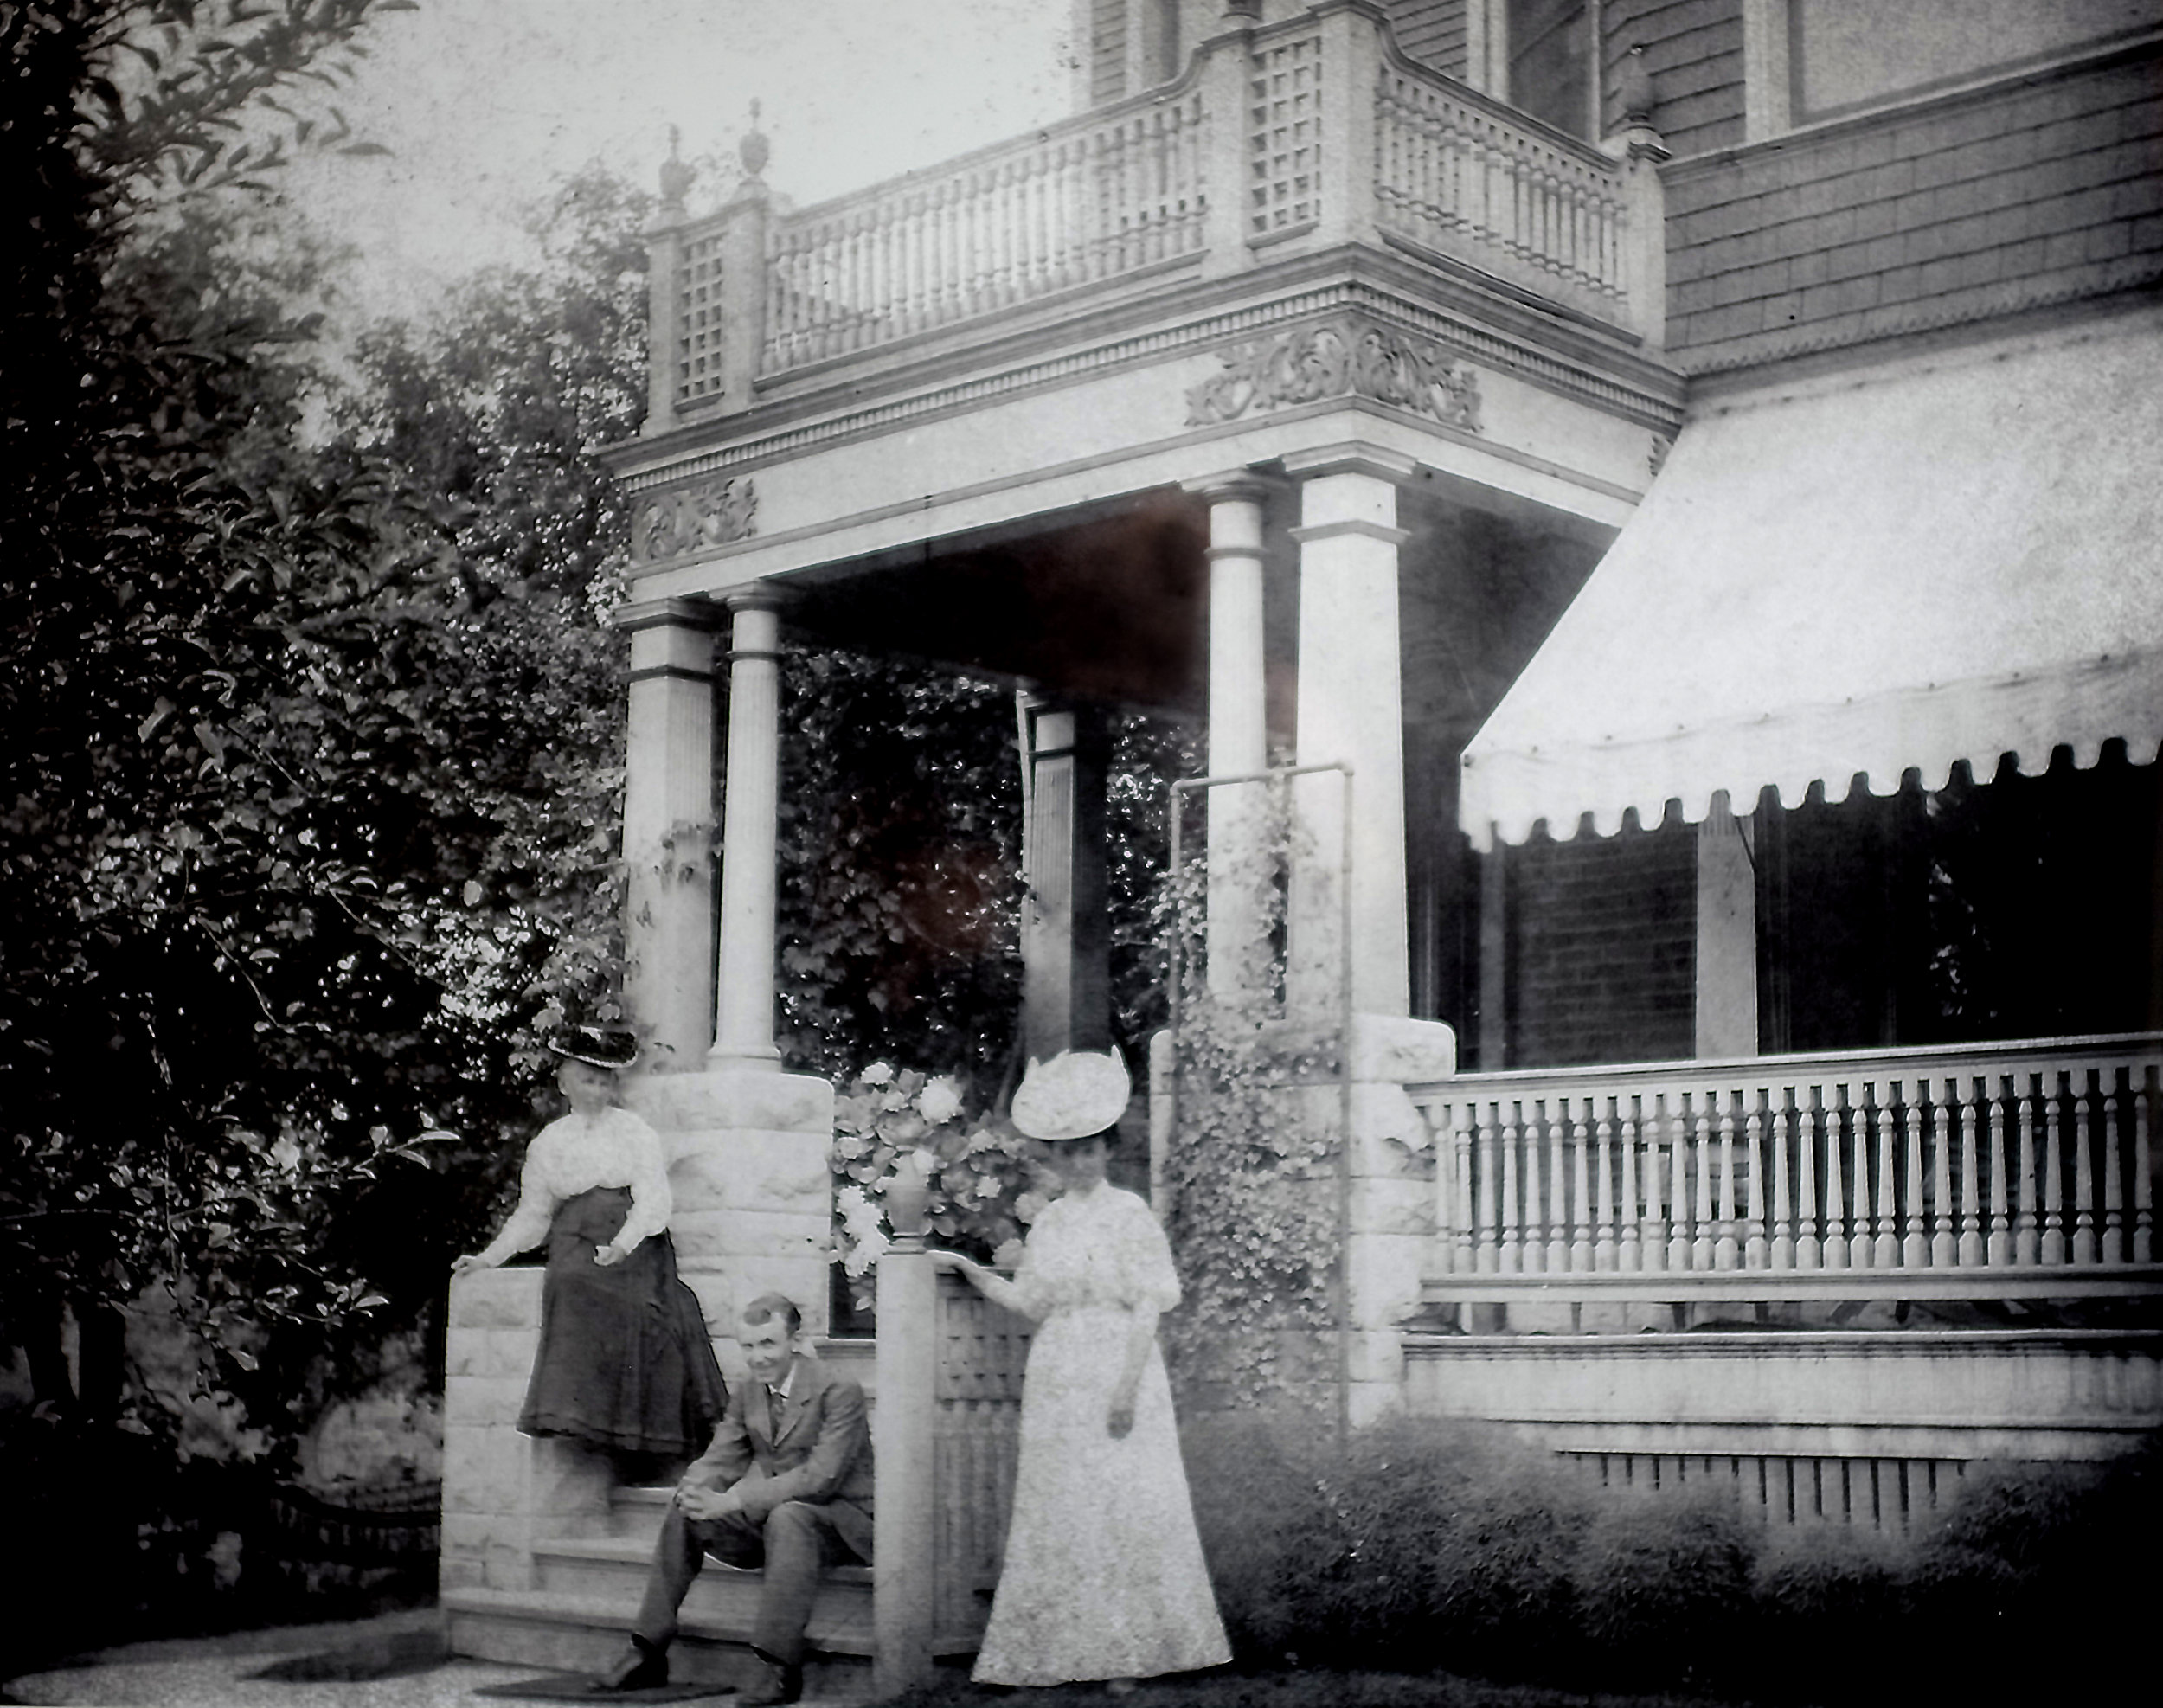 Kneeland family in 1907